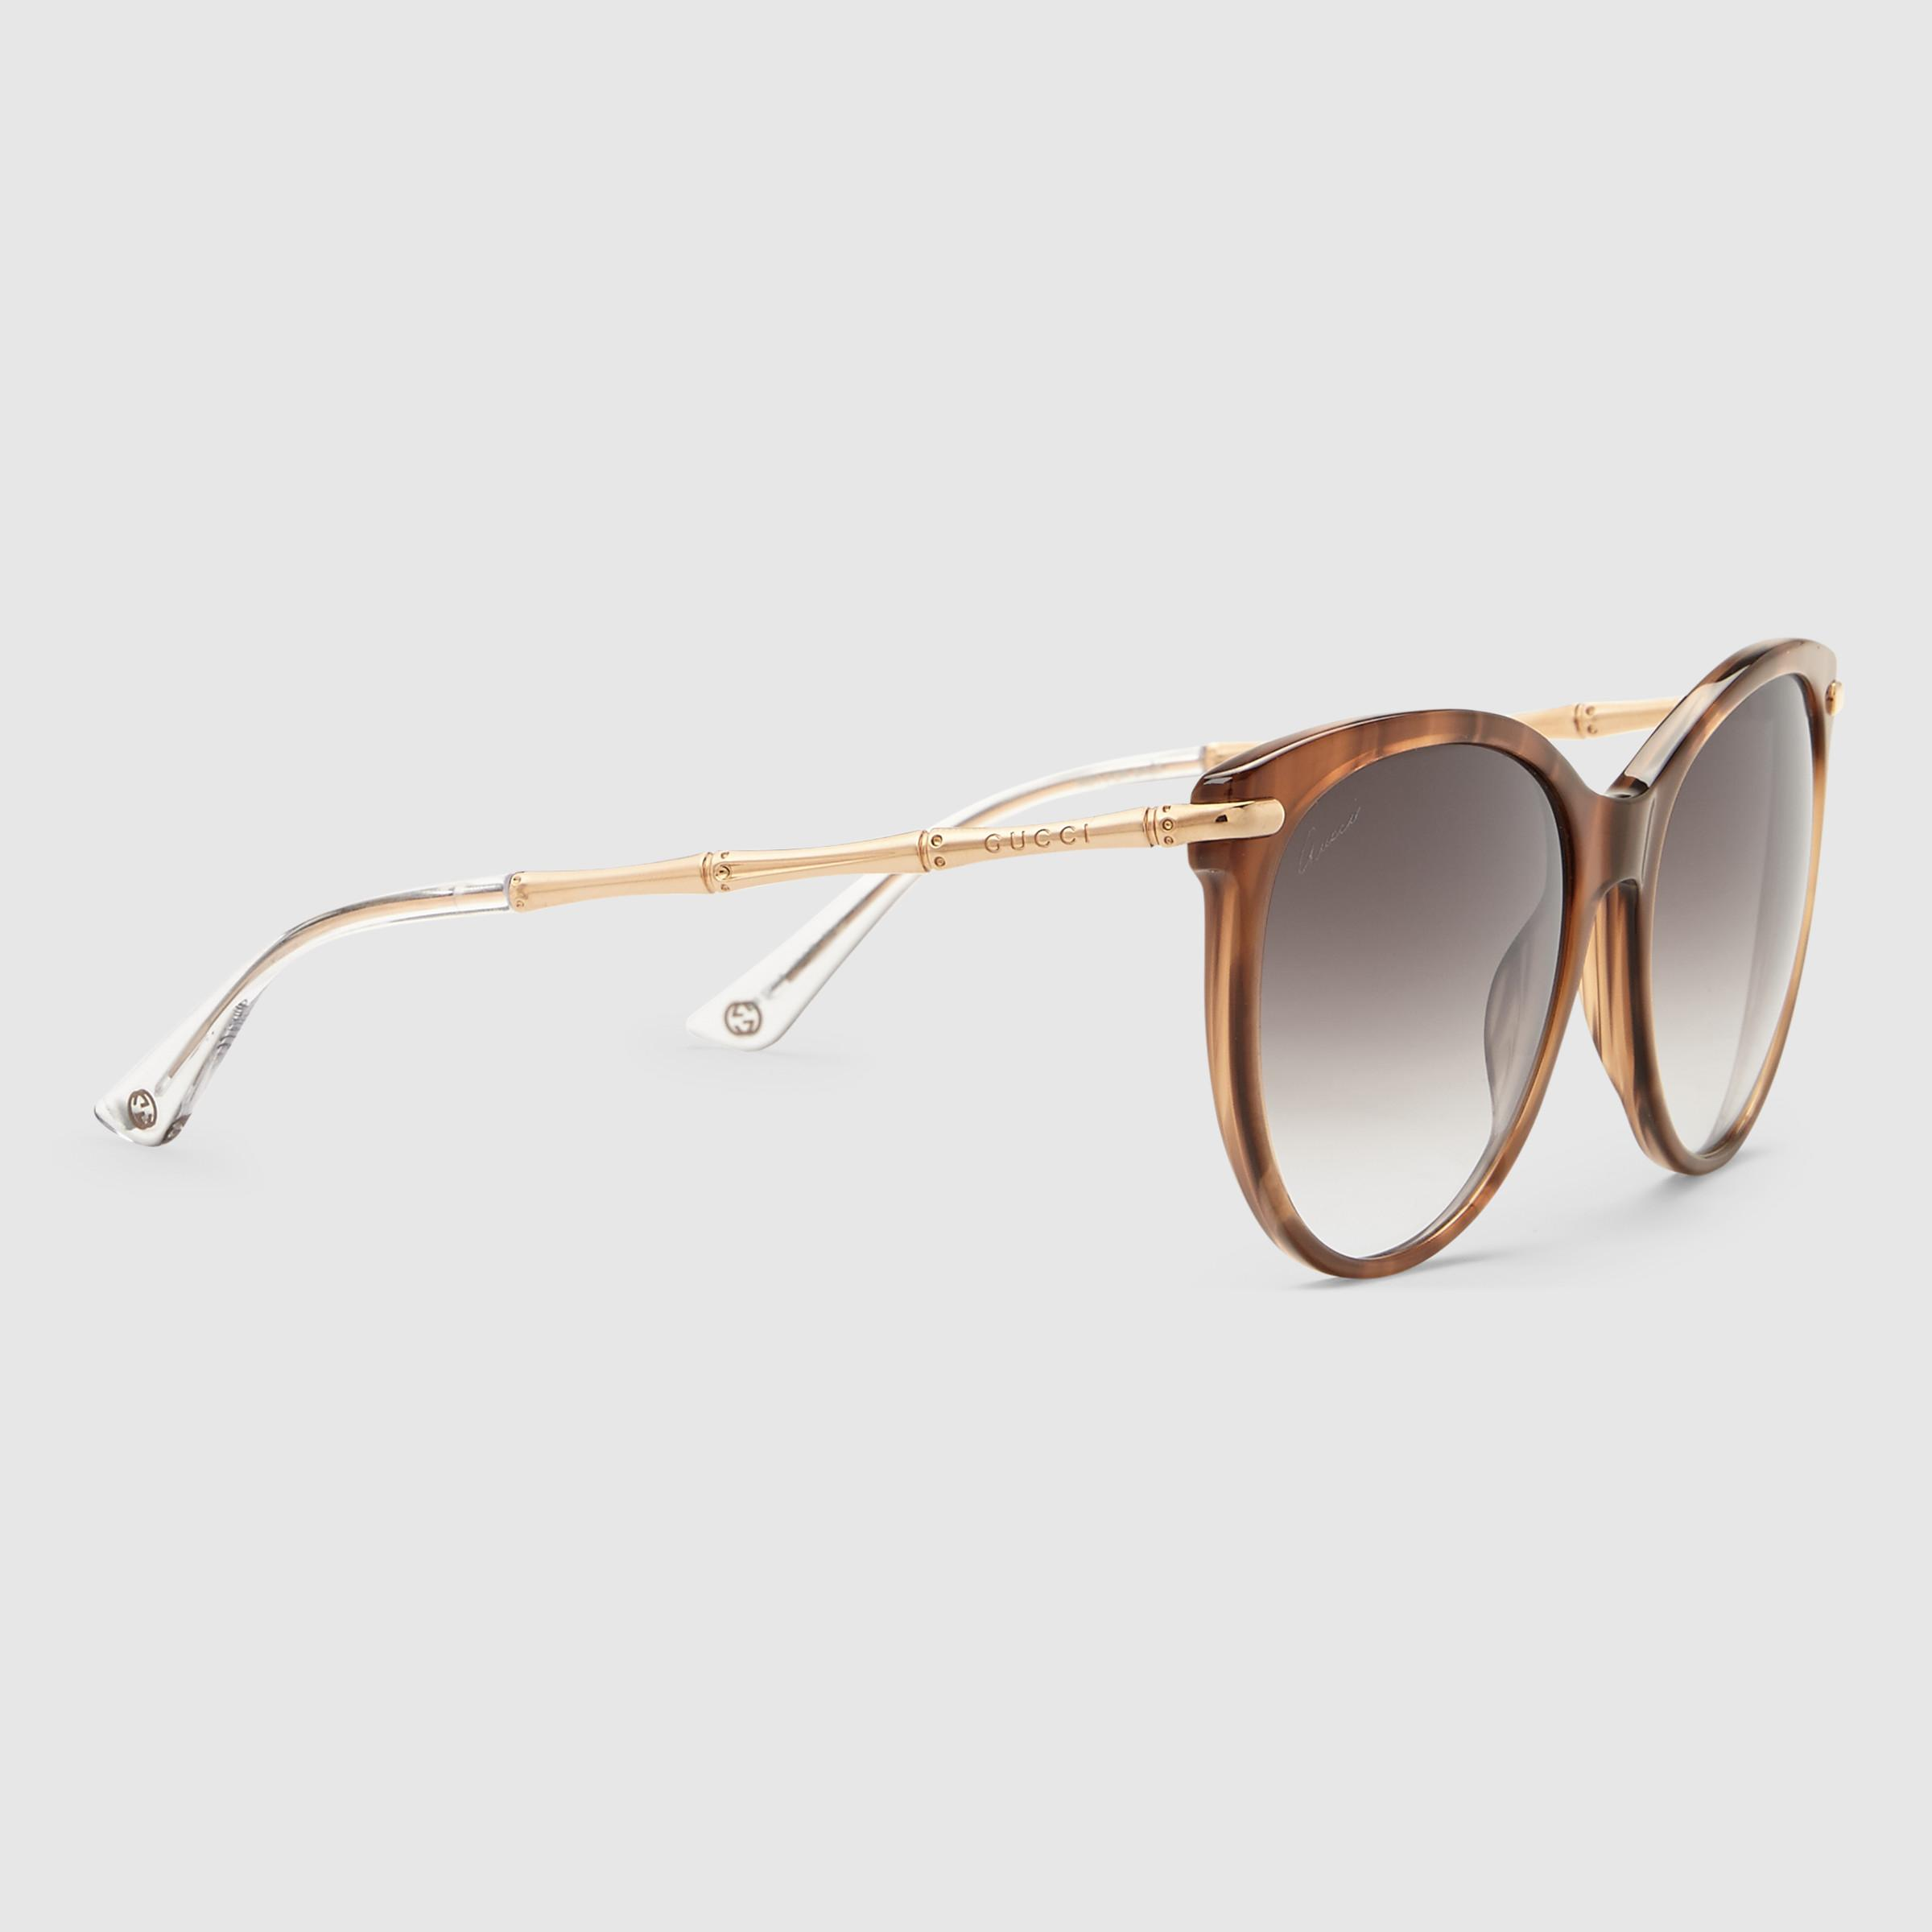 c1a7187c84ae5 Gucci Cat Eye Sunglasses With Metal Bamboo Temples in Red - Lyst